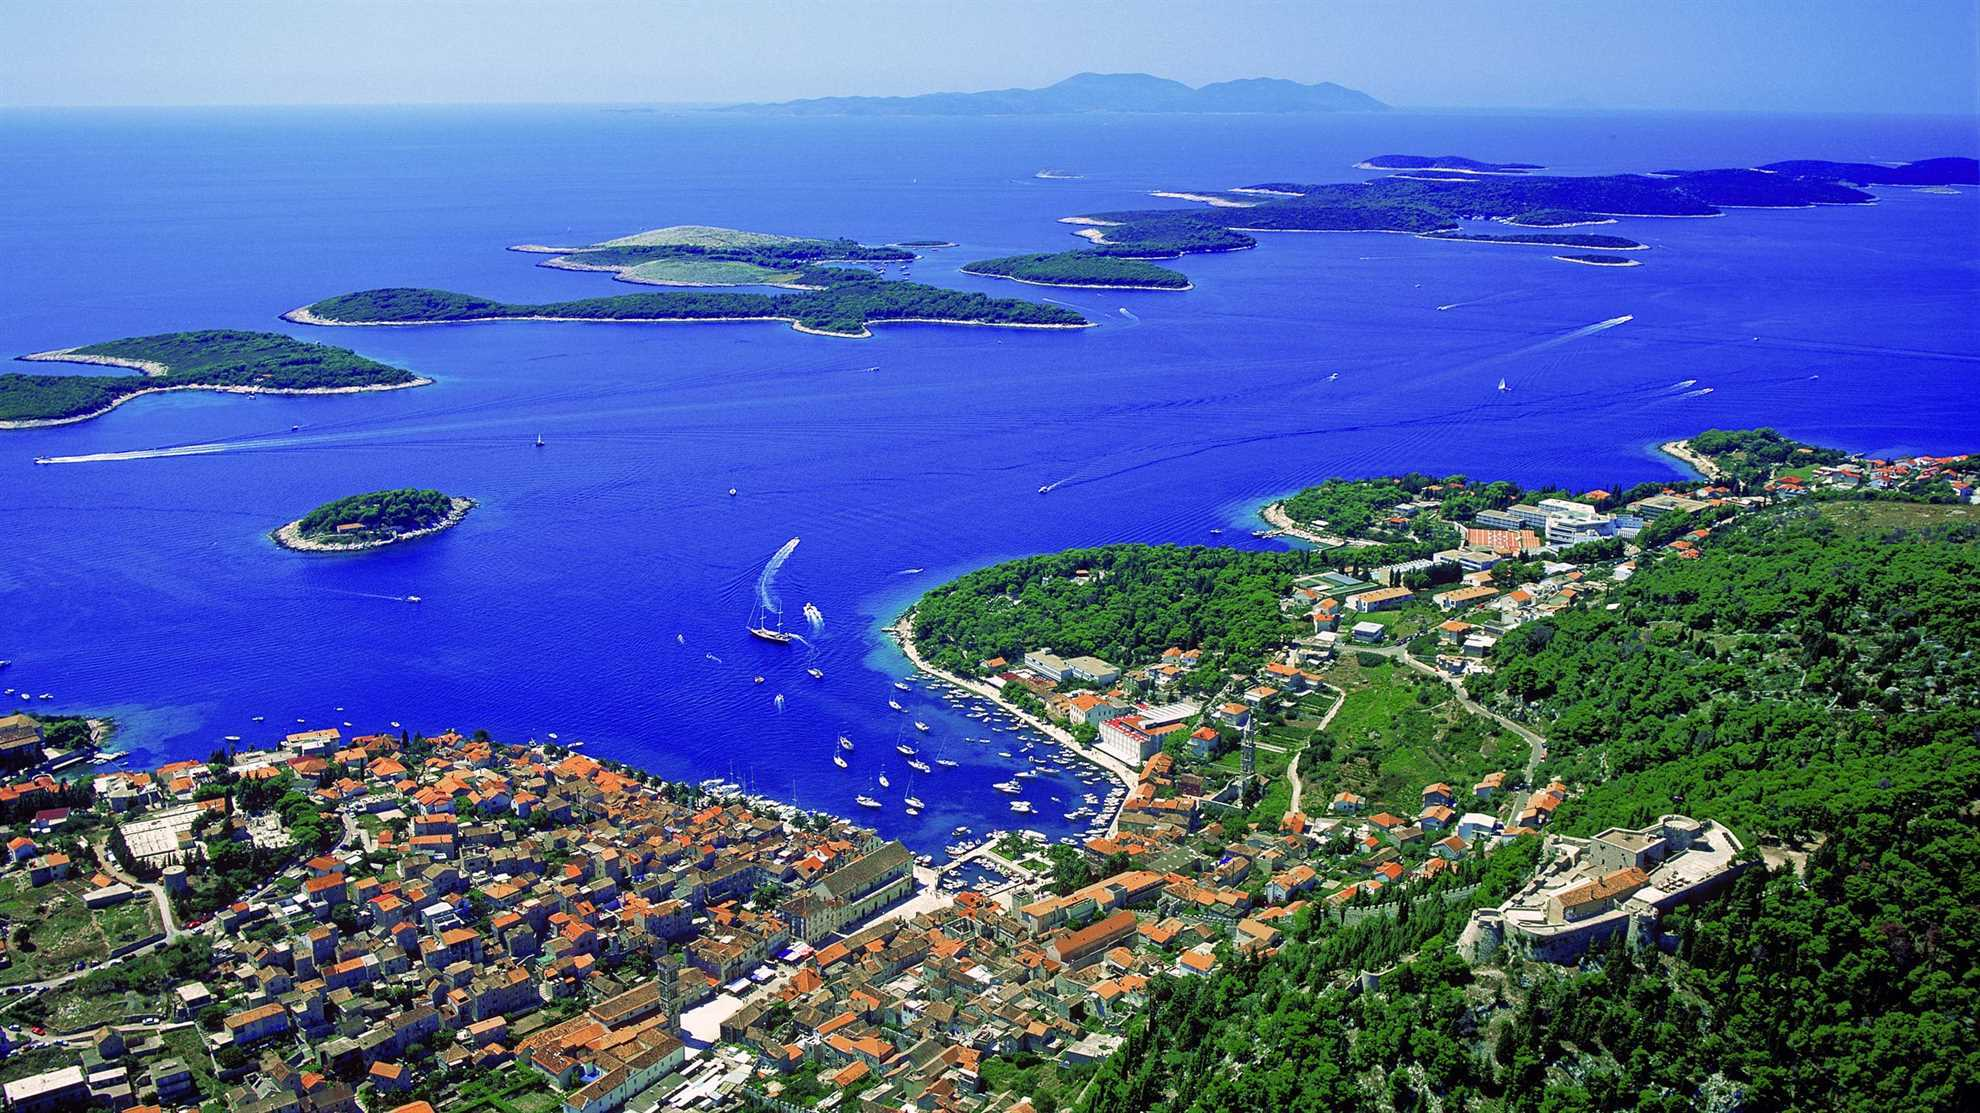 Panoramic view of Hvar Island in Croatia